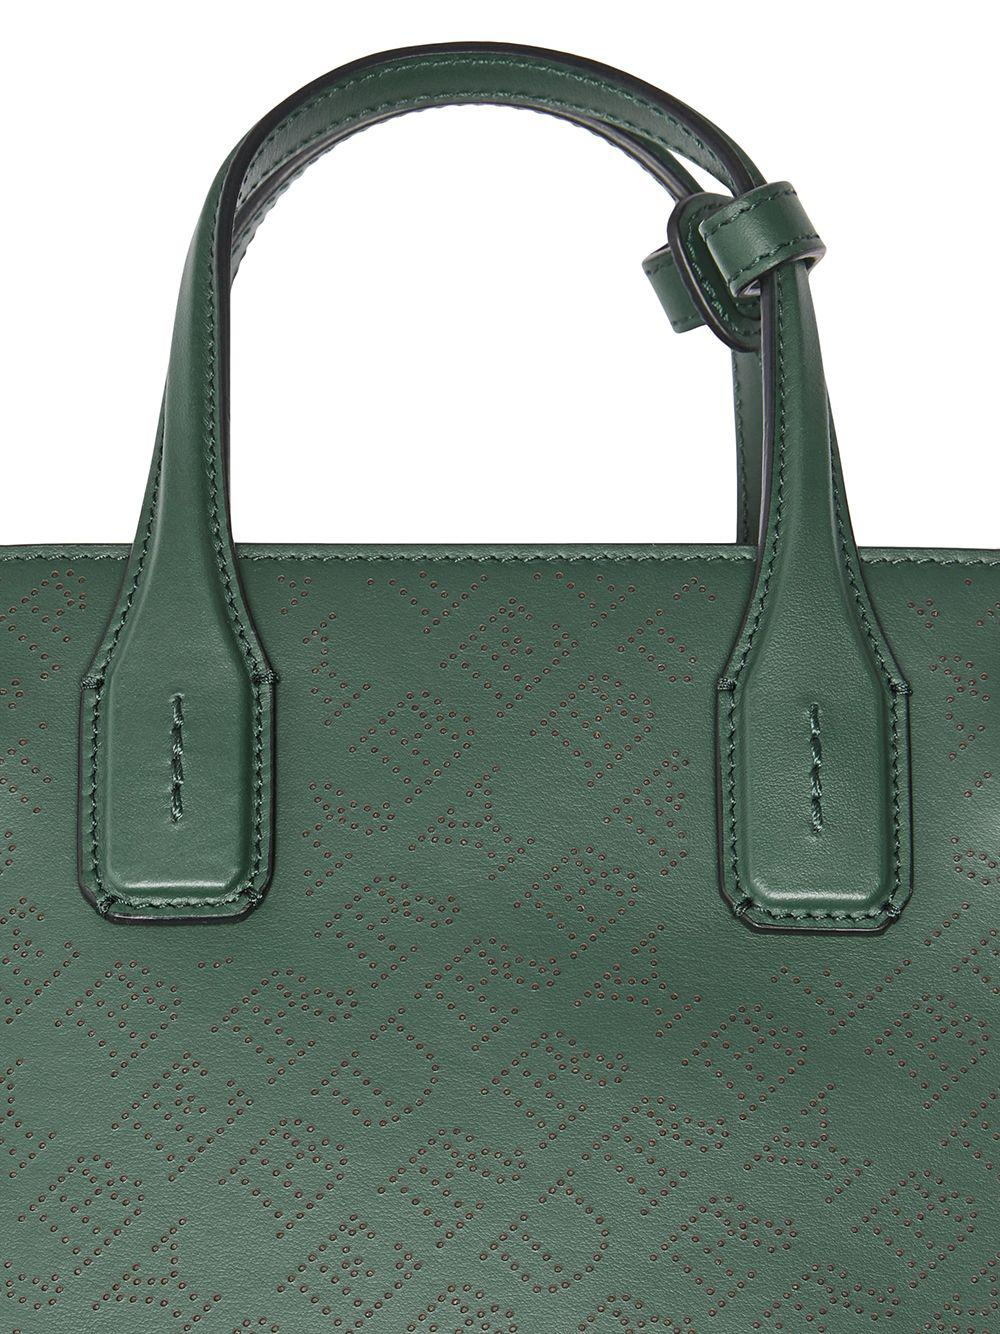 d5a6a8331116 Burberry The Small Banner In Perforated Logo Leather in Green - Lyst